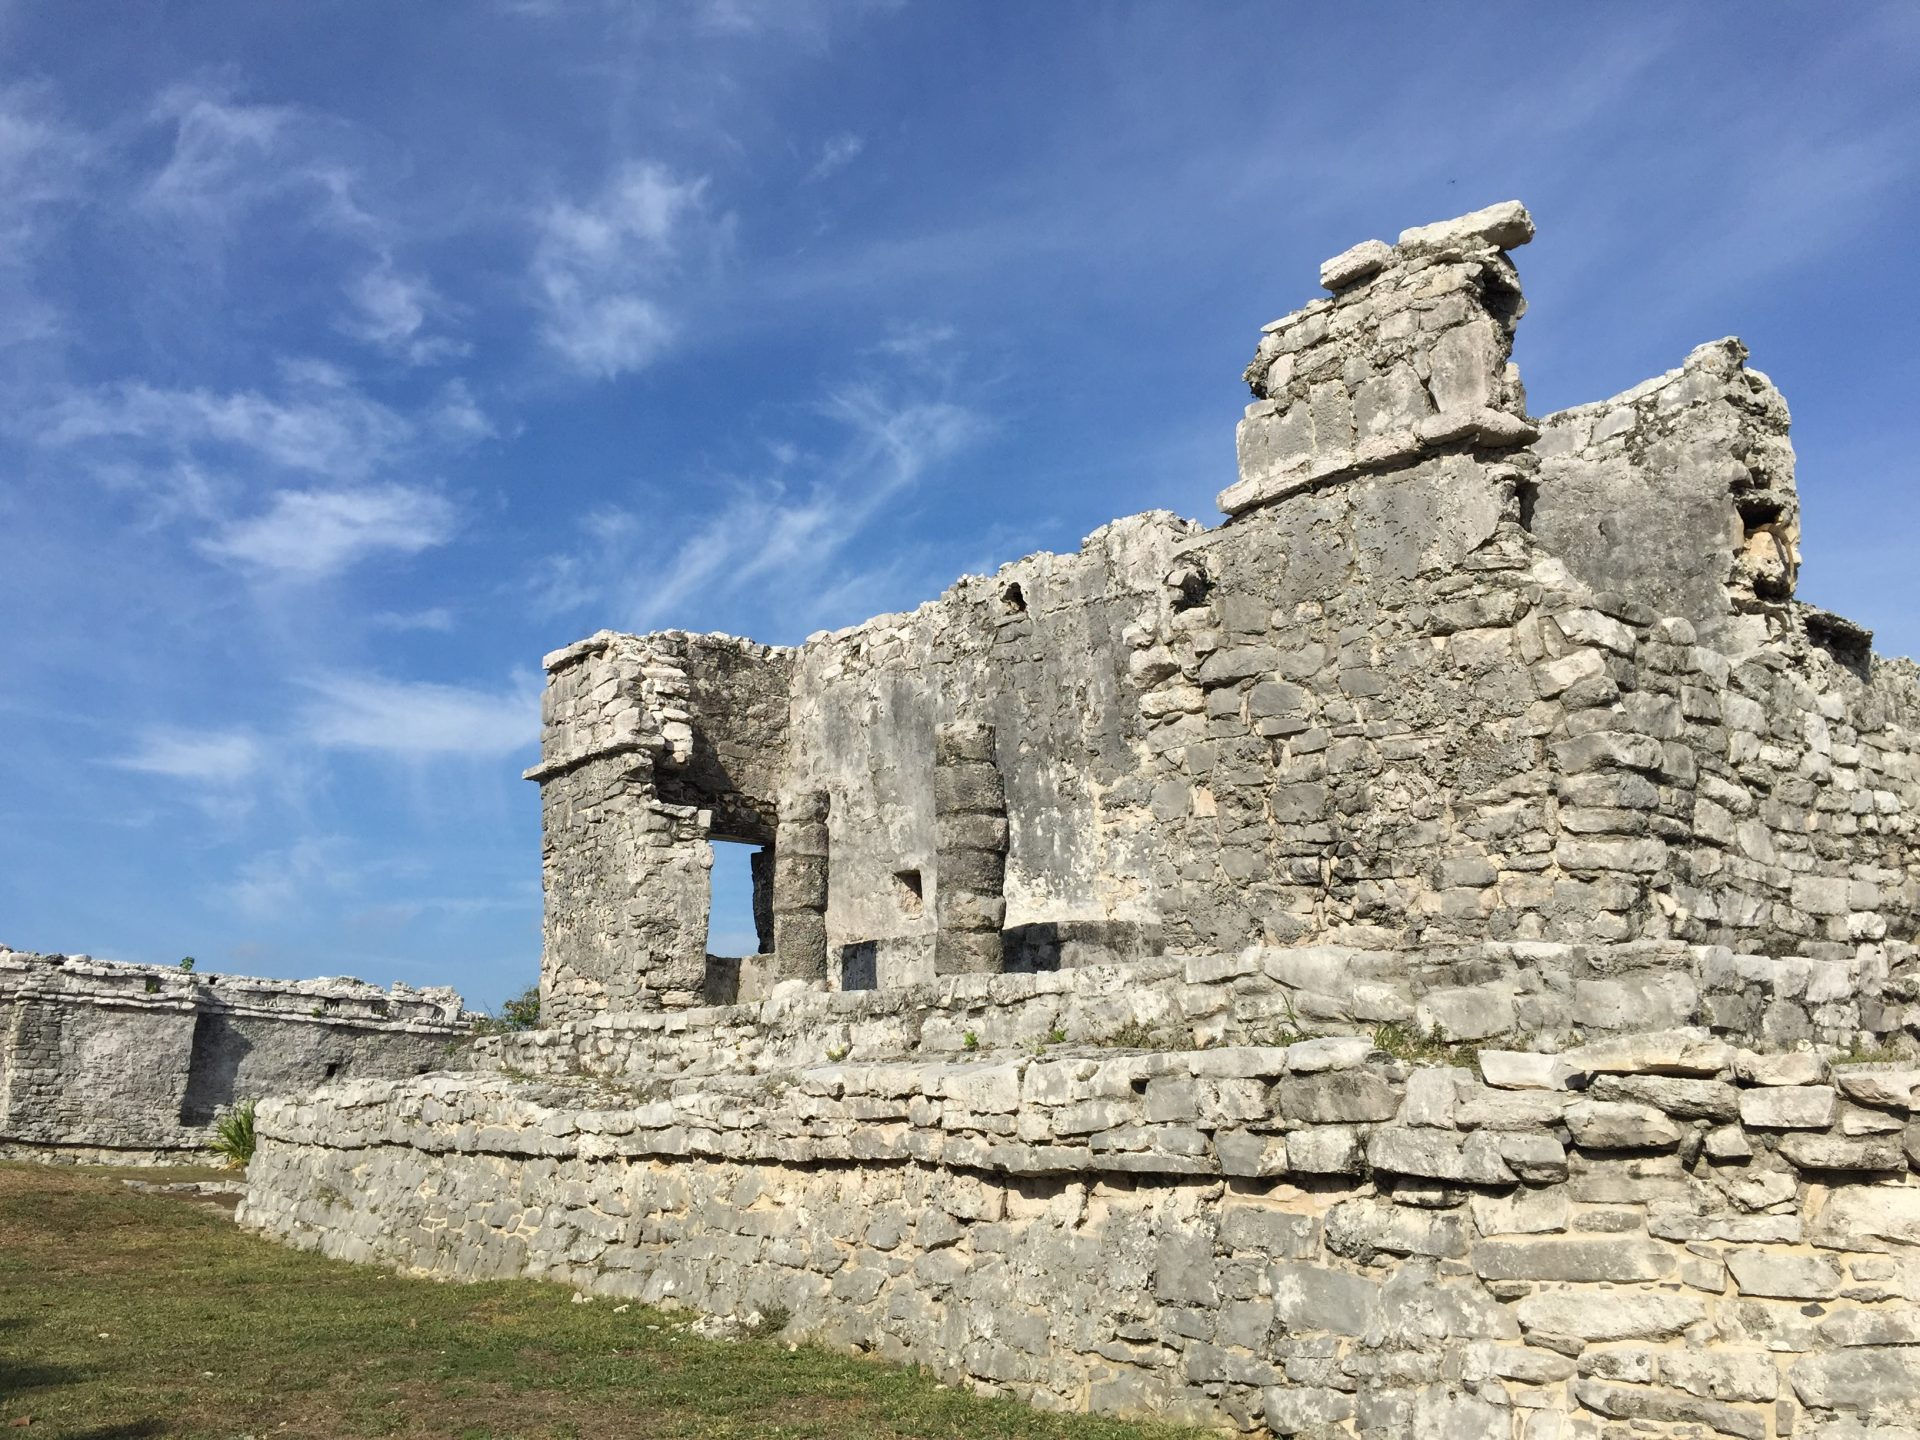 ruins tulum mexico - Travel Contests: October 23, 2019 - Mexico, New Orleans, England, & more